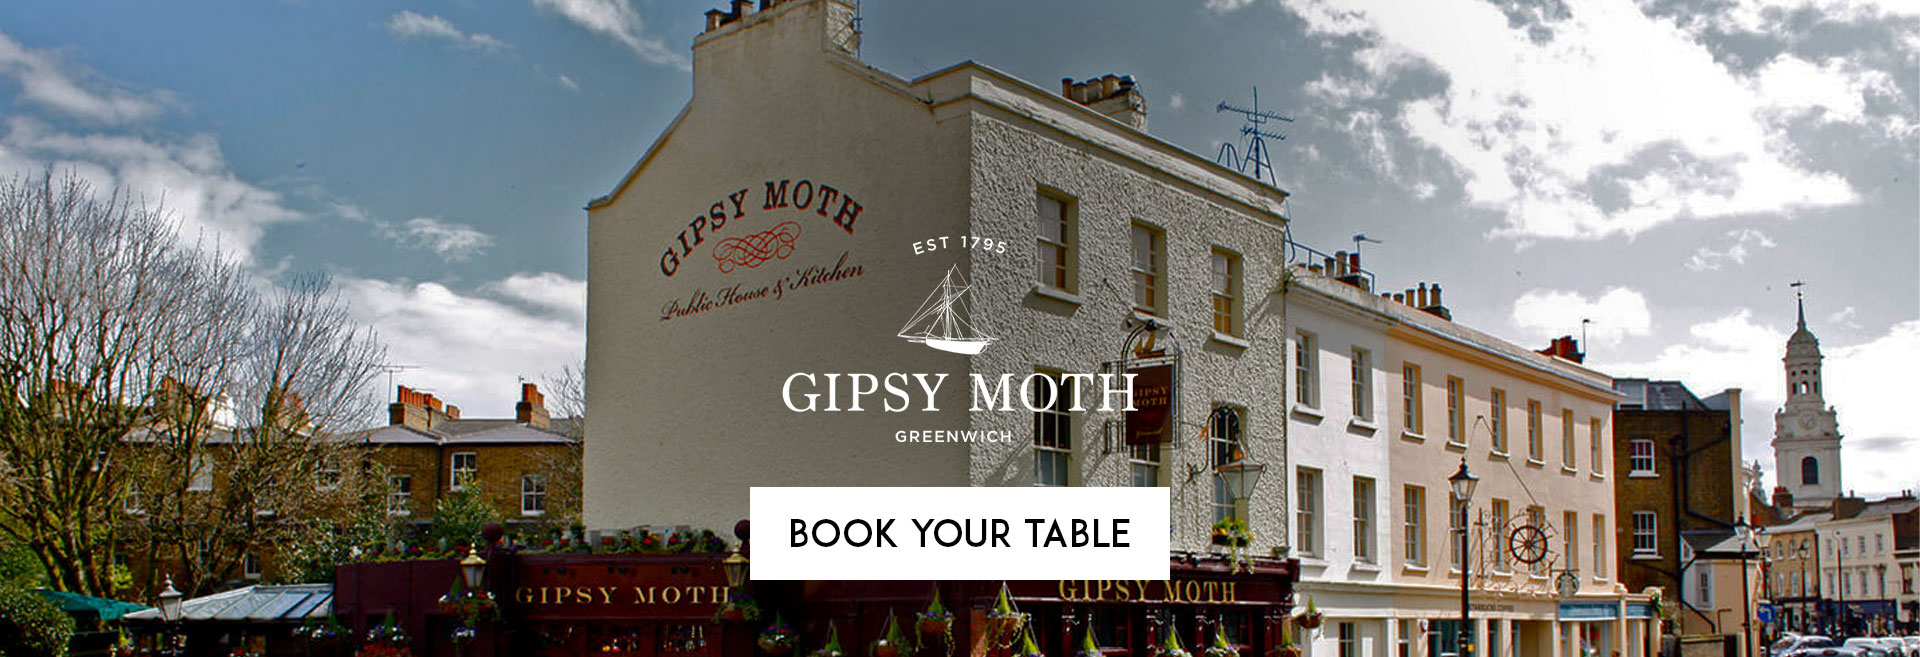 Book Your Table at The Gipsy Moth